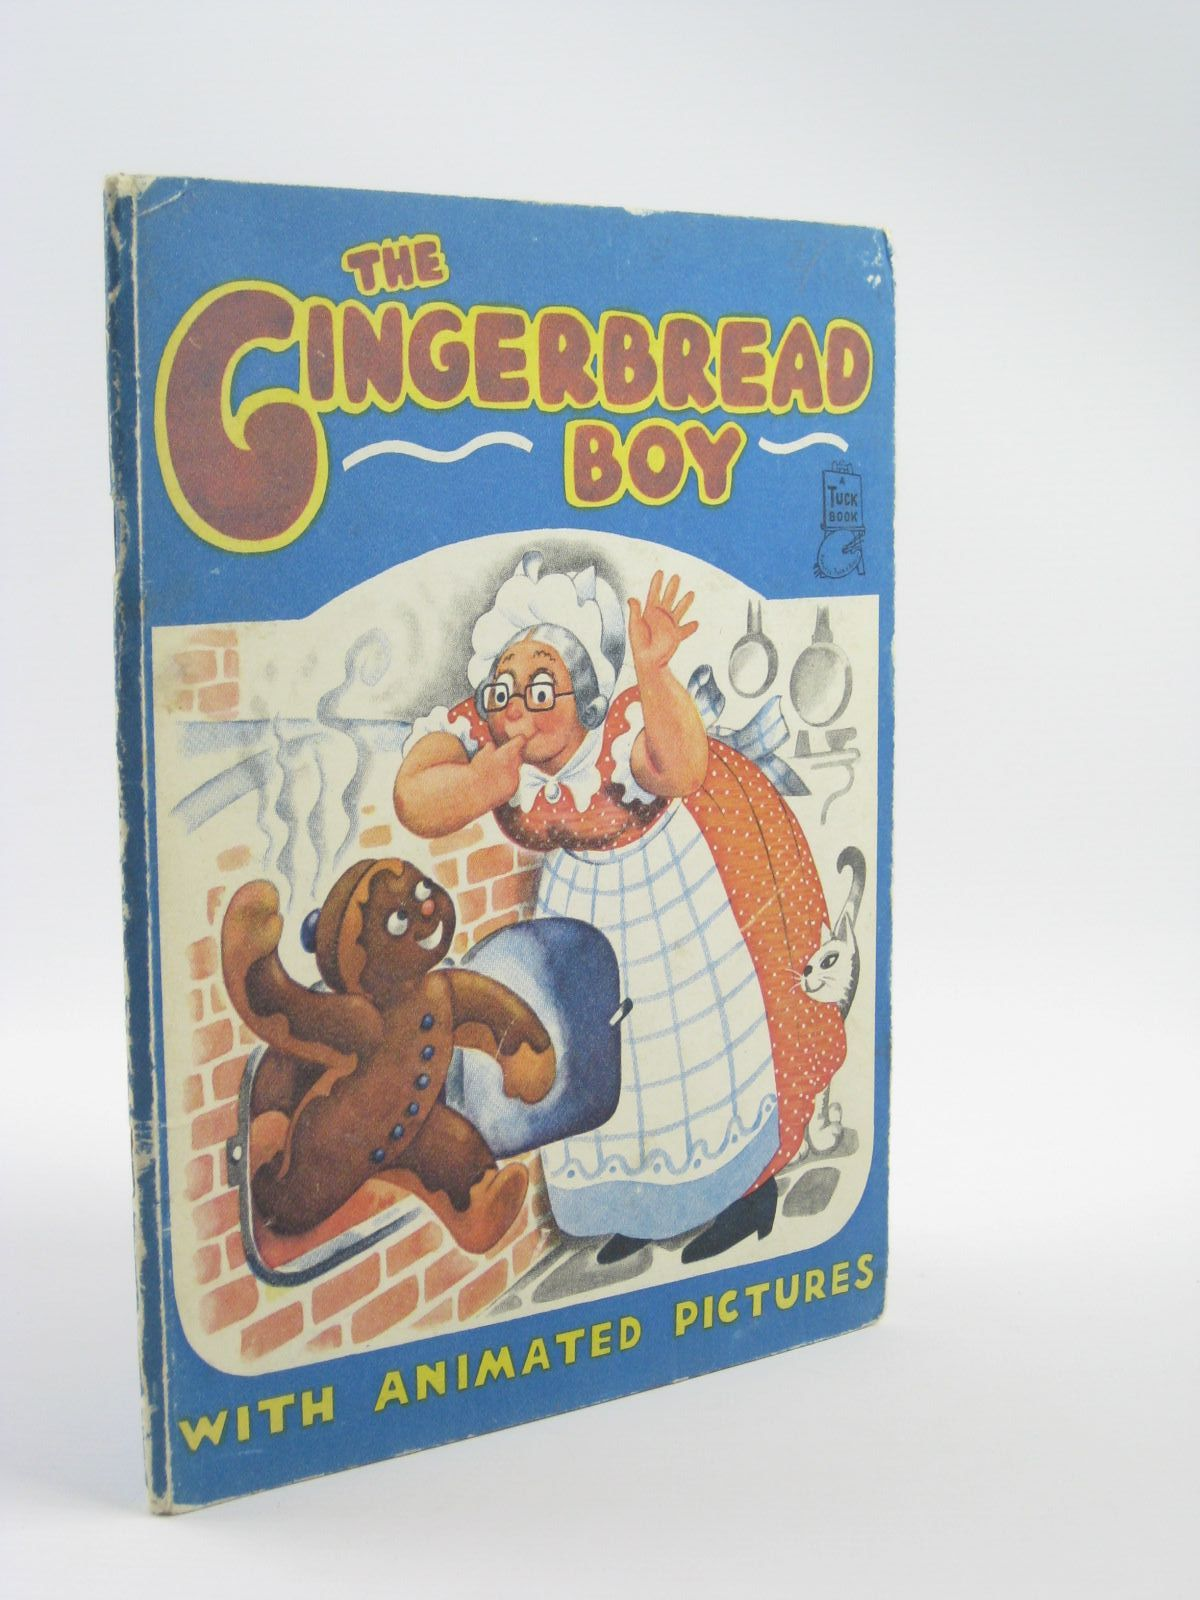 Photo of THE GINGERBREAD BOY WITH ANIMATED PICTURES